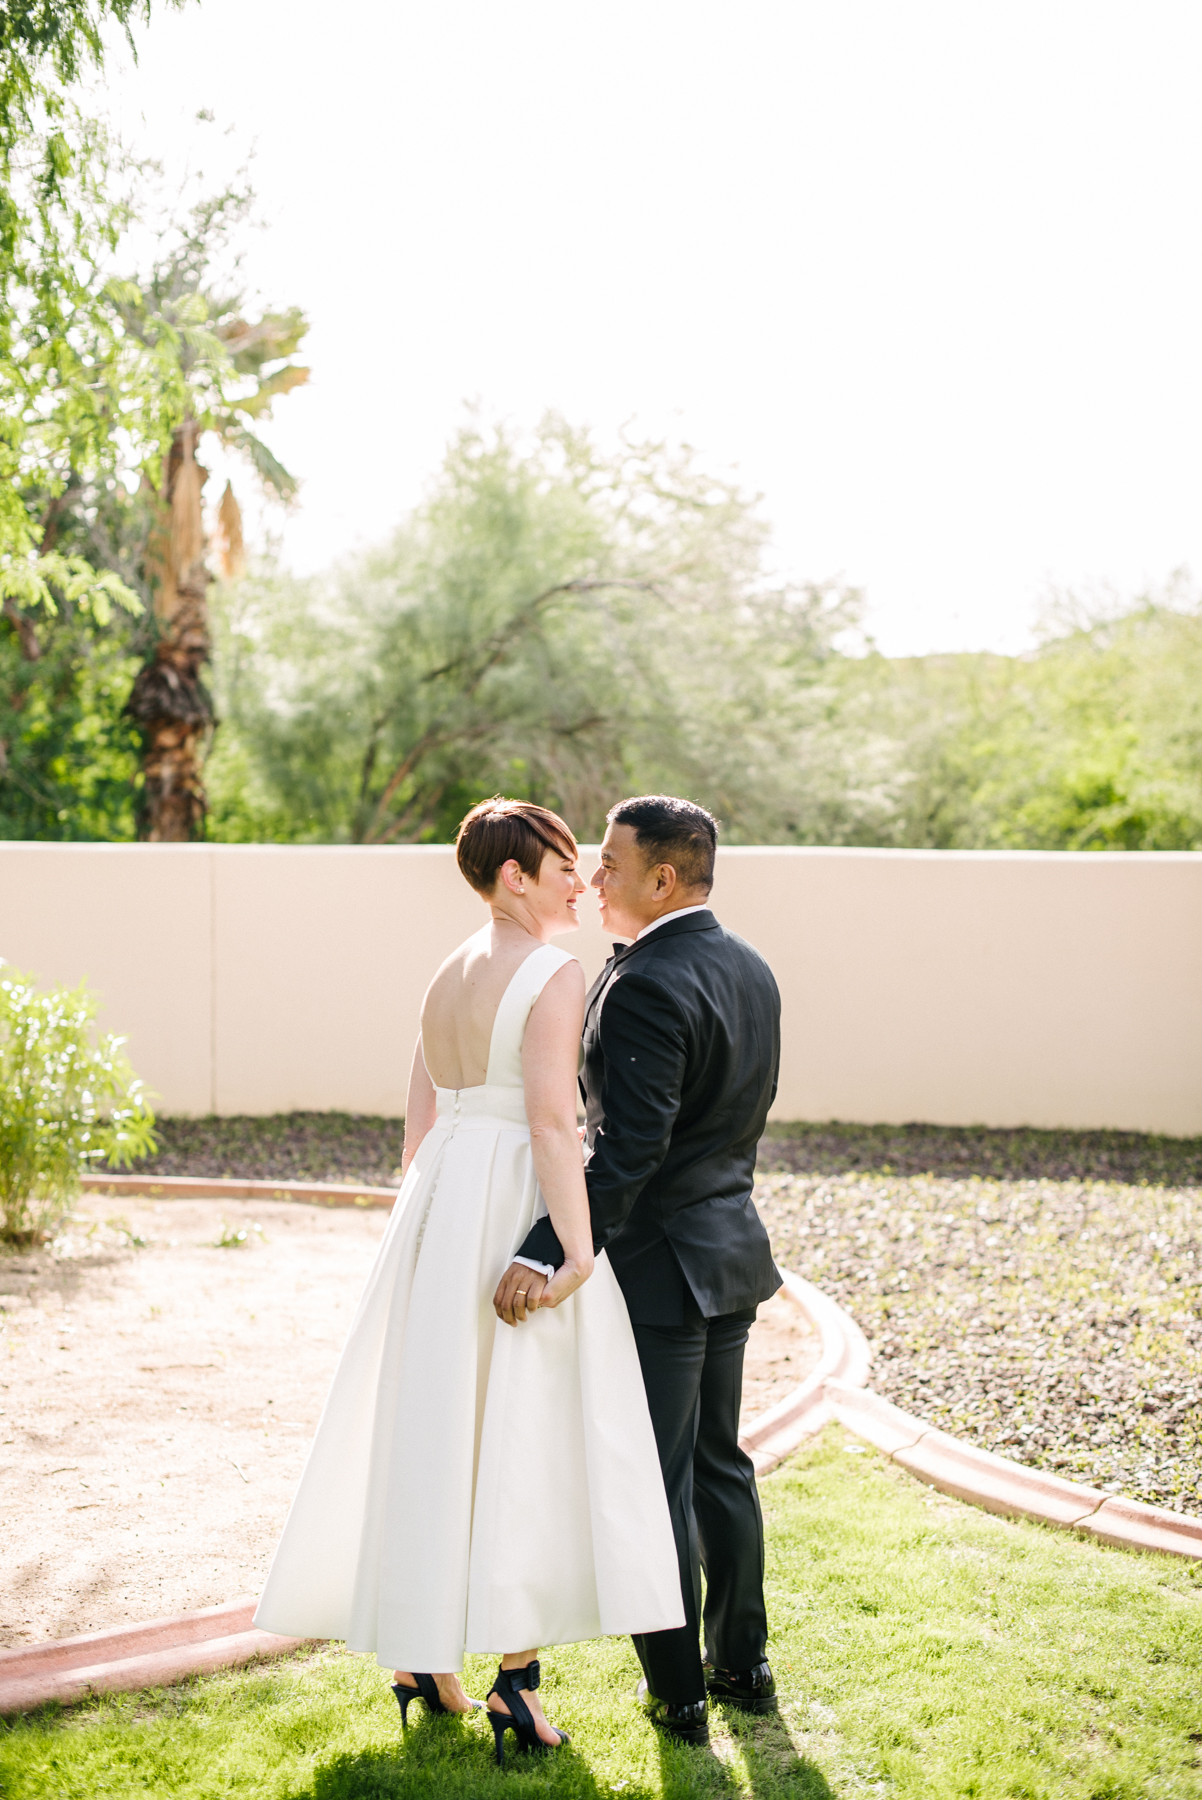 Secret Garden Event Center Wedding - Meredith Amadee Photography-52.jpg